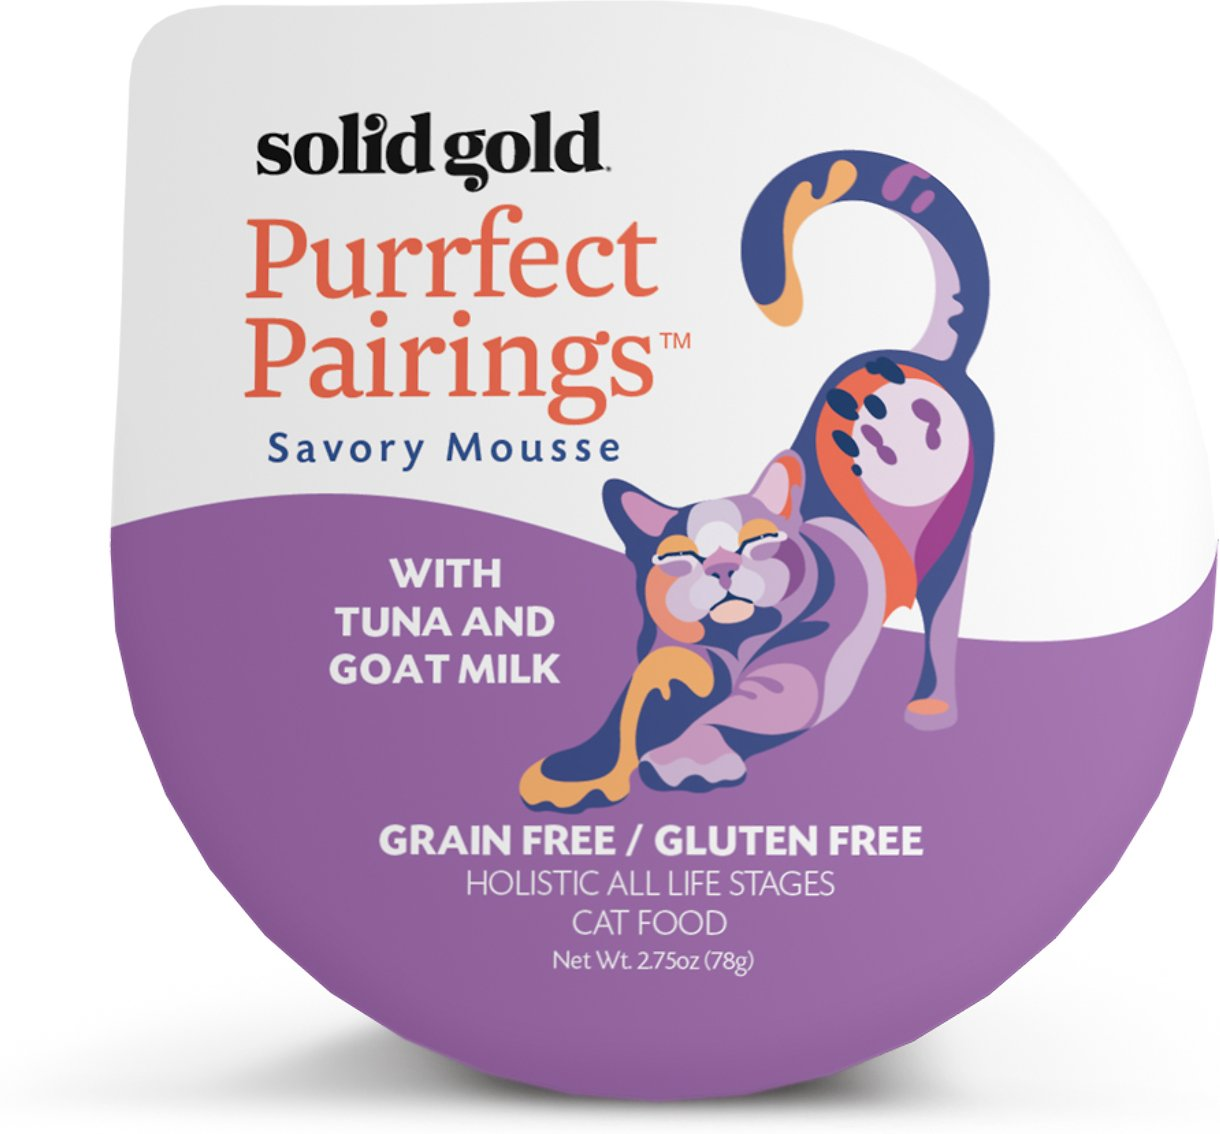 We peeled back the layers on the Solid Gold Purrfect Pairings ingredients list in our latest #ChewyInfluencer review. We didn't expect to find this!